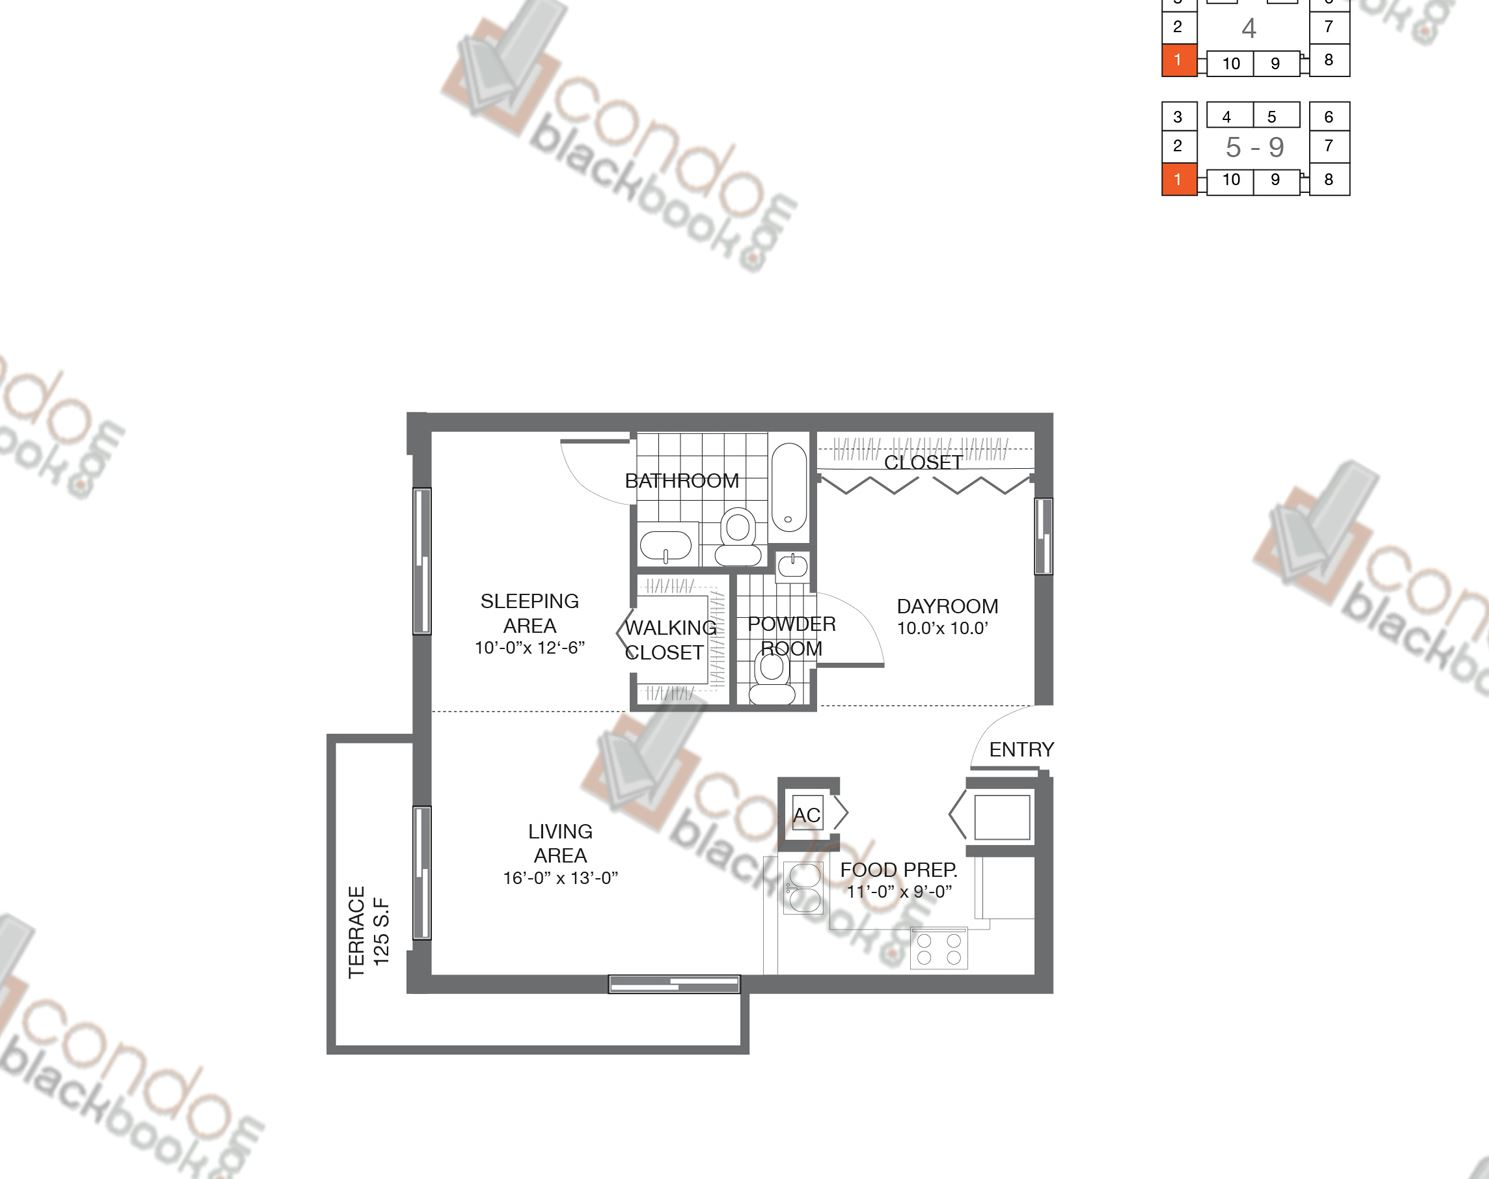 Floor plan for Bay Lofts Edgewater Miami, model Loft 1, line 01, 1/2 bedrooms, 822 sq ft